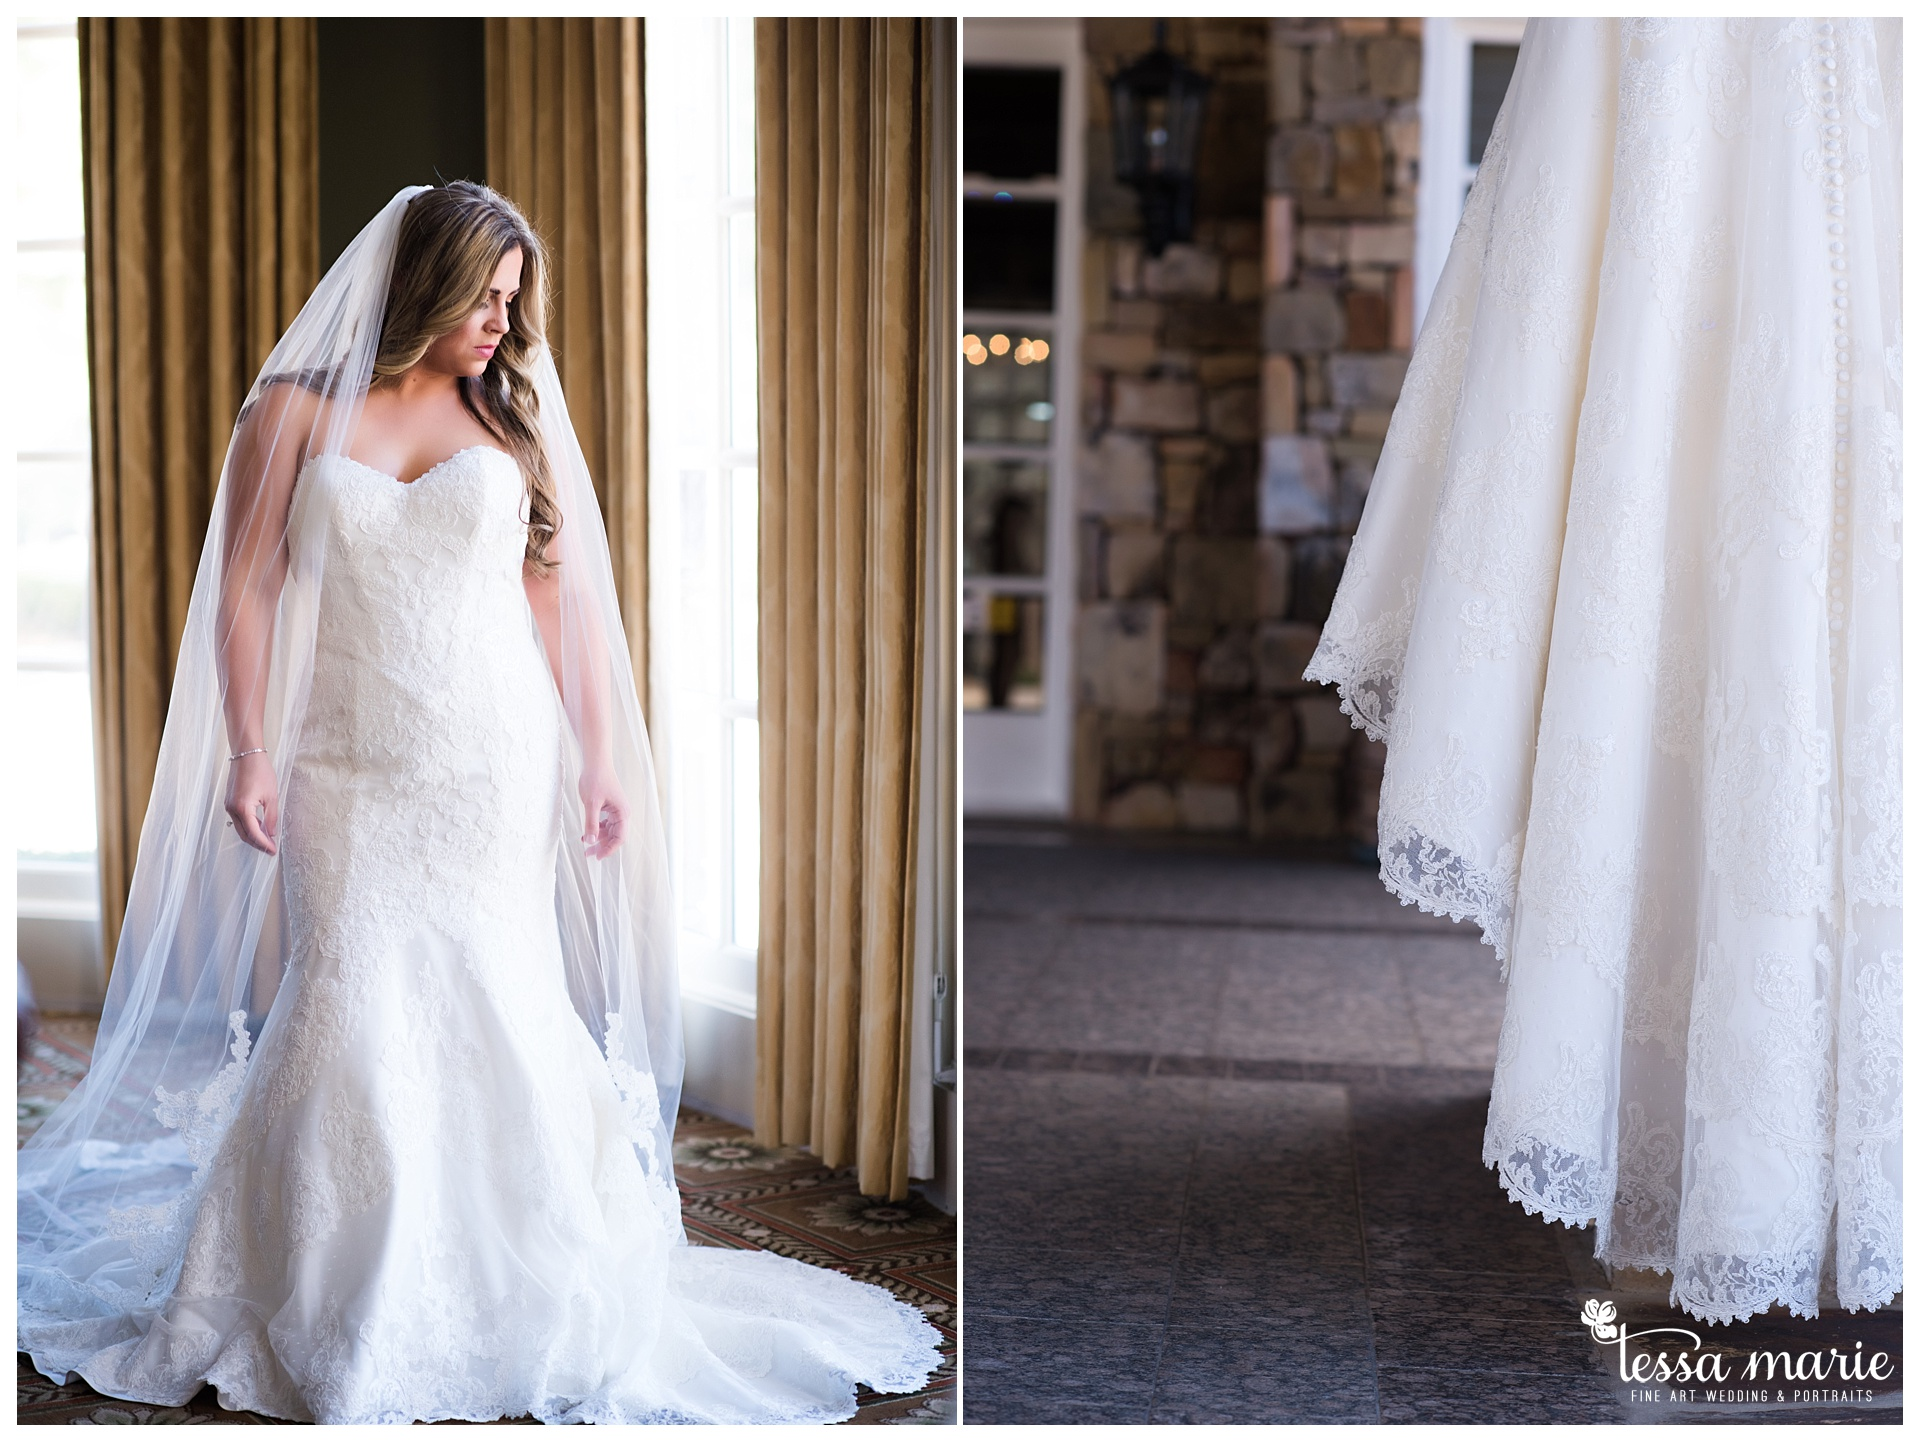 tessa_marie_weddings_legacy_story_focused_wedding_pictures_atlanta_wedding_photographer_0073